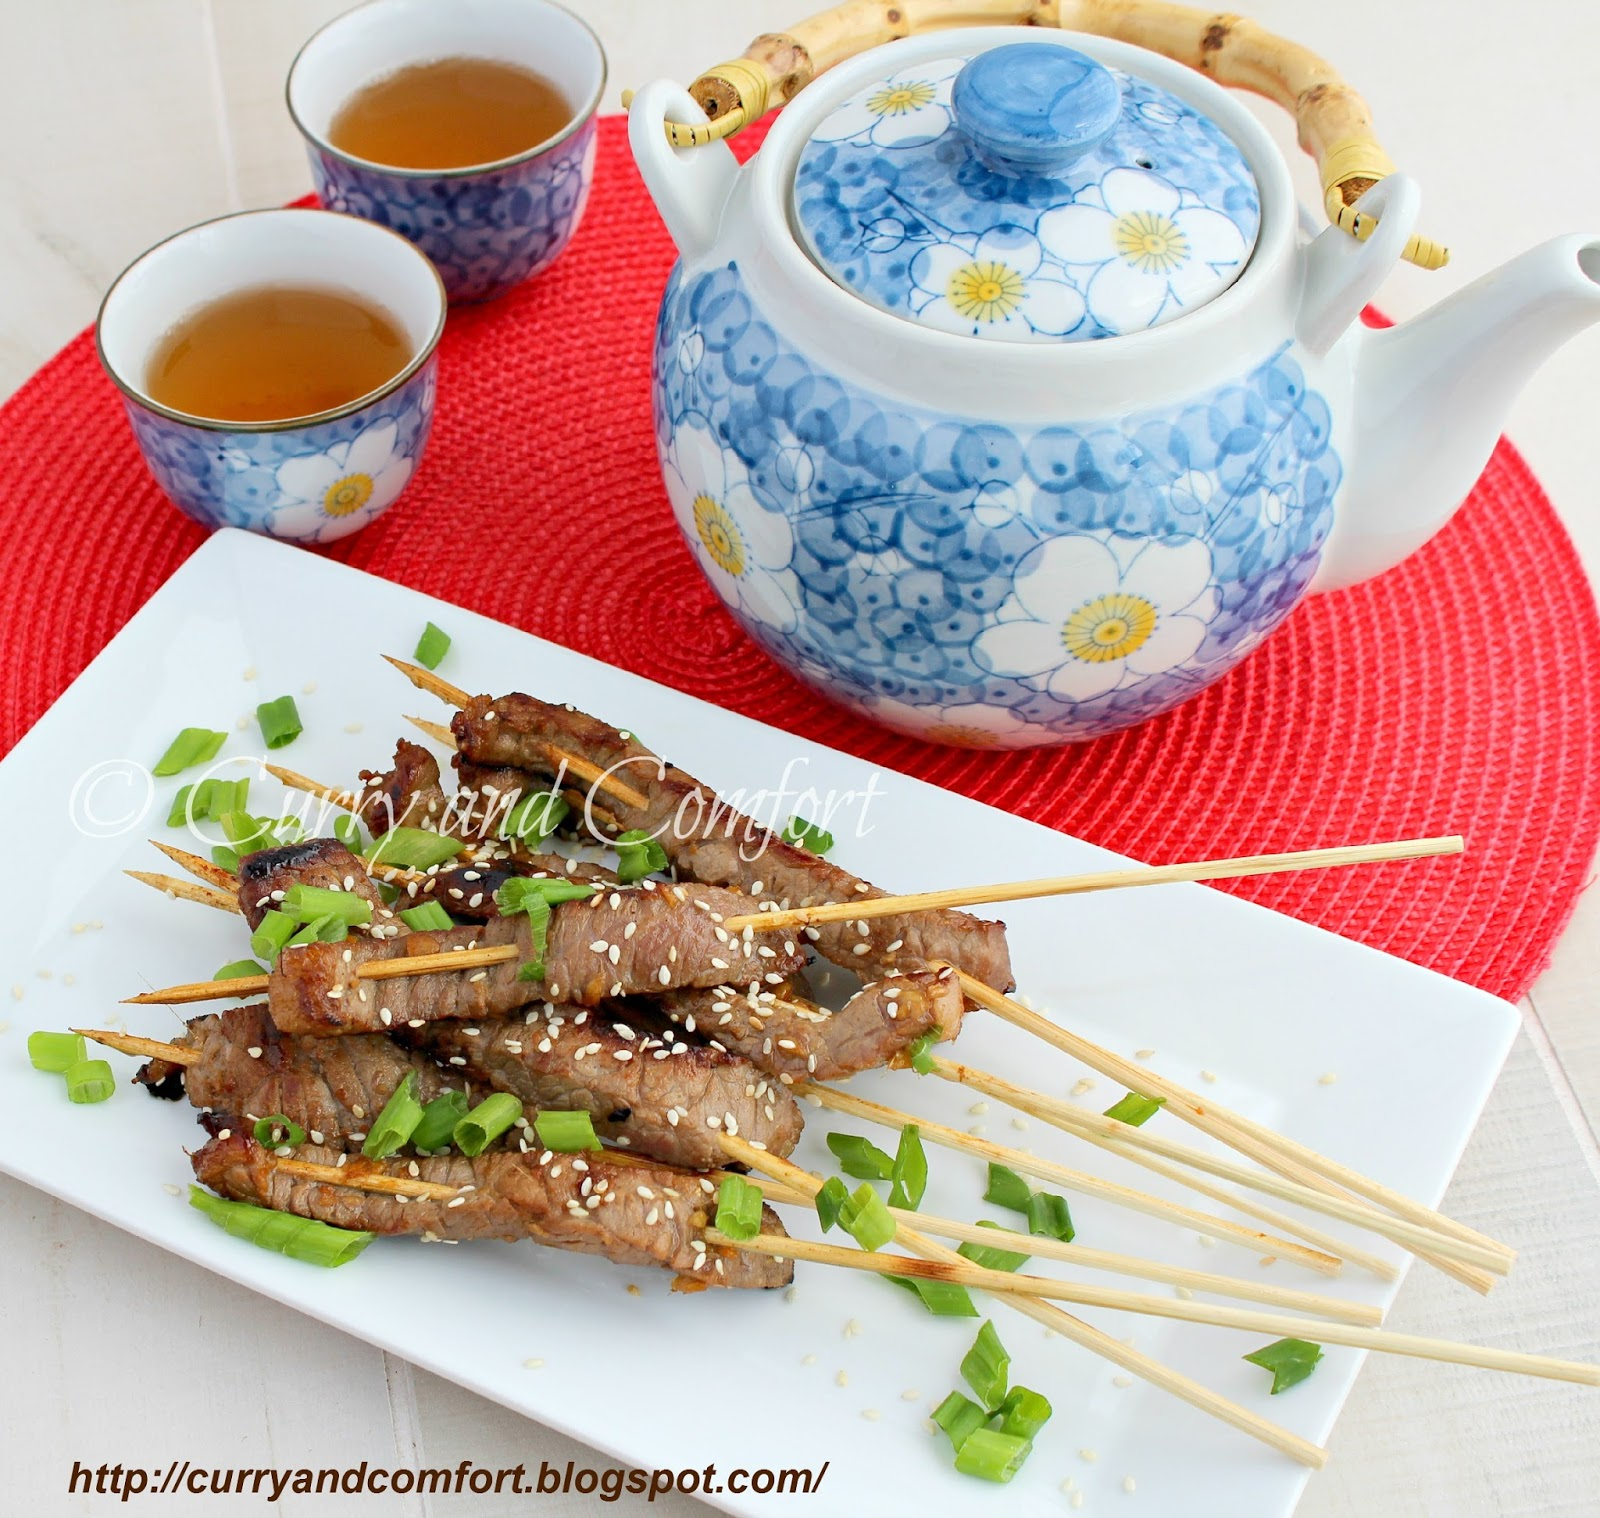 Curry and Comfort: Sesame Orange Beef Skewers